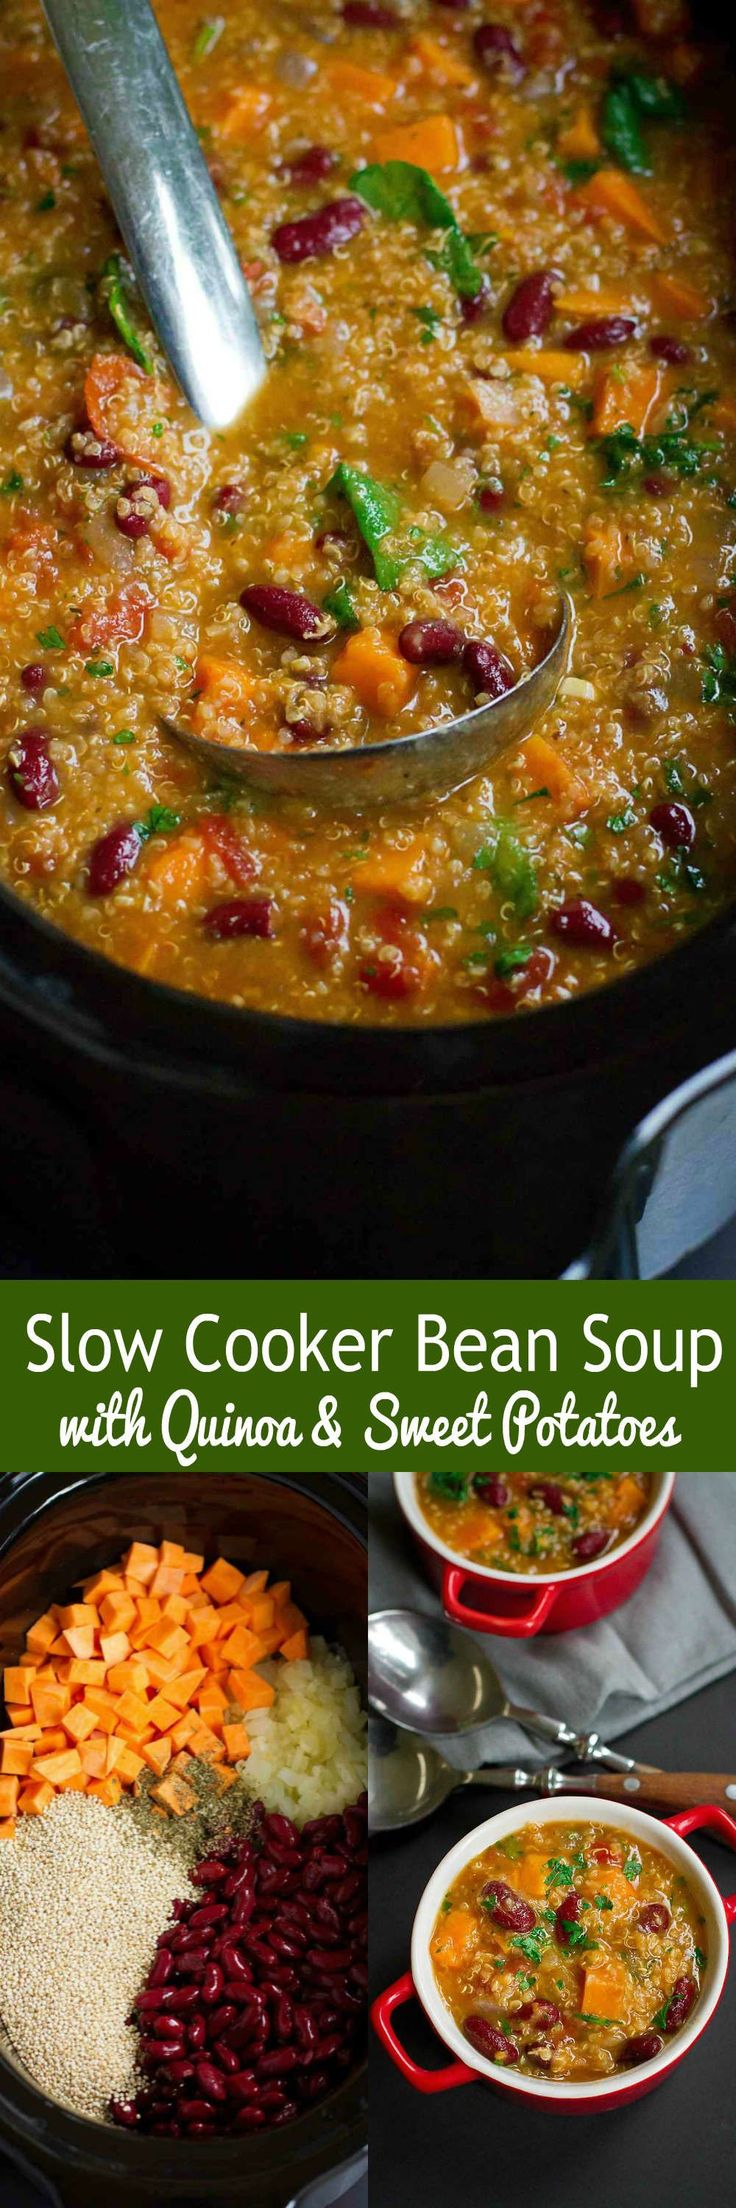 This Slow Cooker Bean Soup with Quinoa and Sweet Potaotes is packed with fiber and flavor. Throw everything in the crockpot and walk away! 218 calories and 6 Weight Watchers SmartPoints